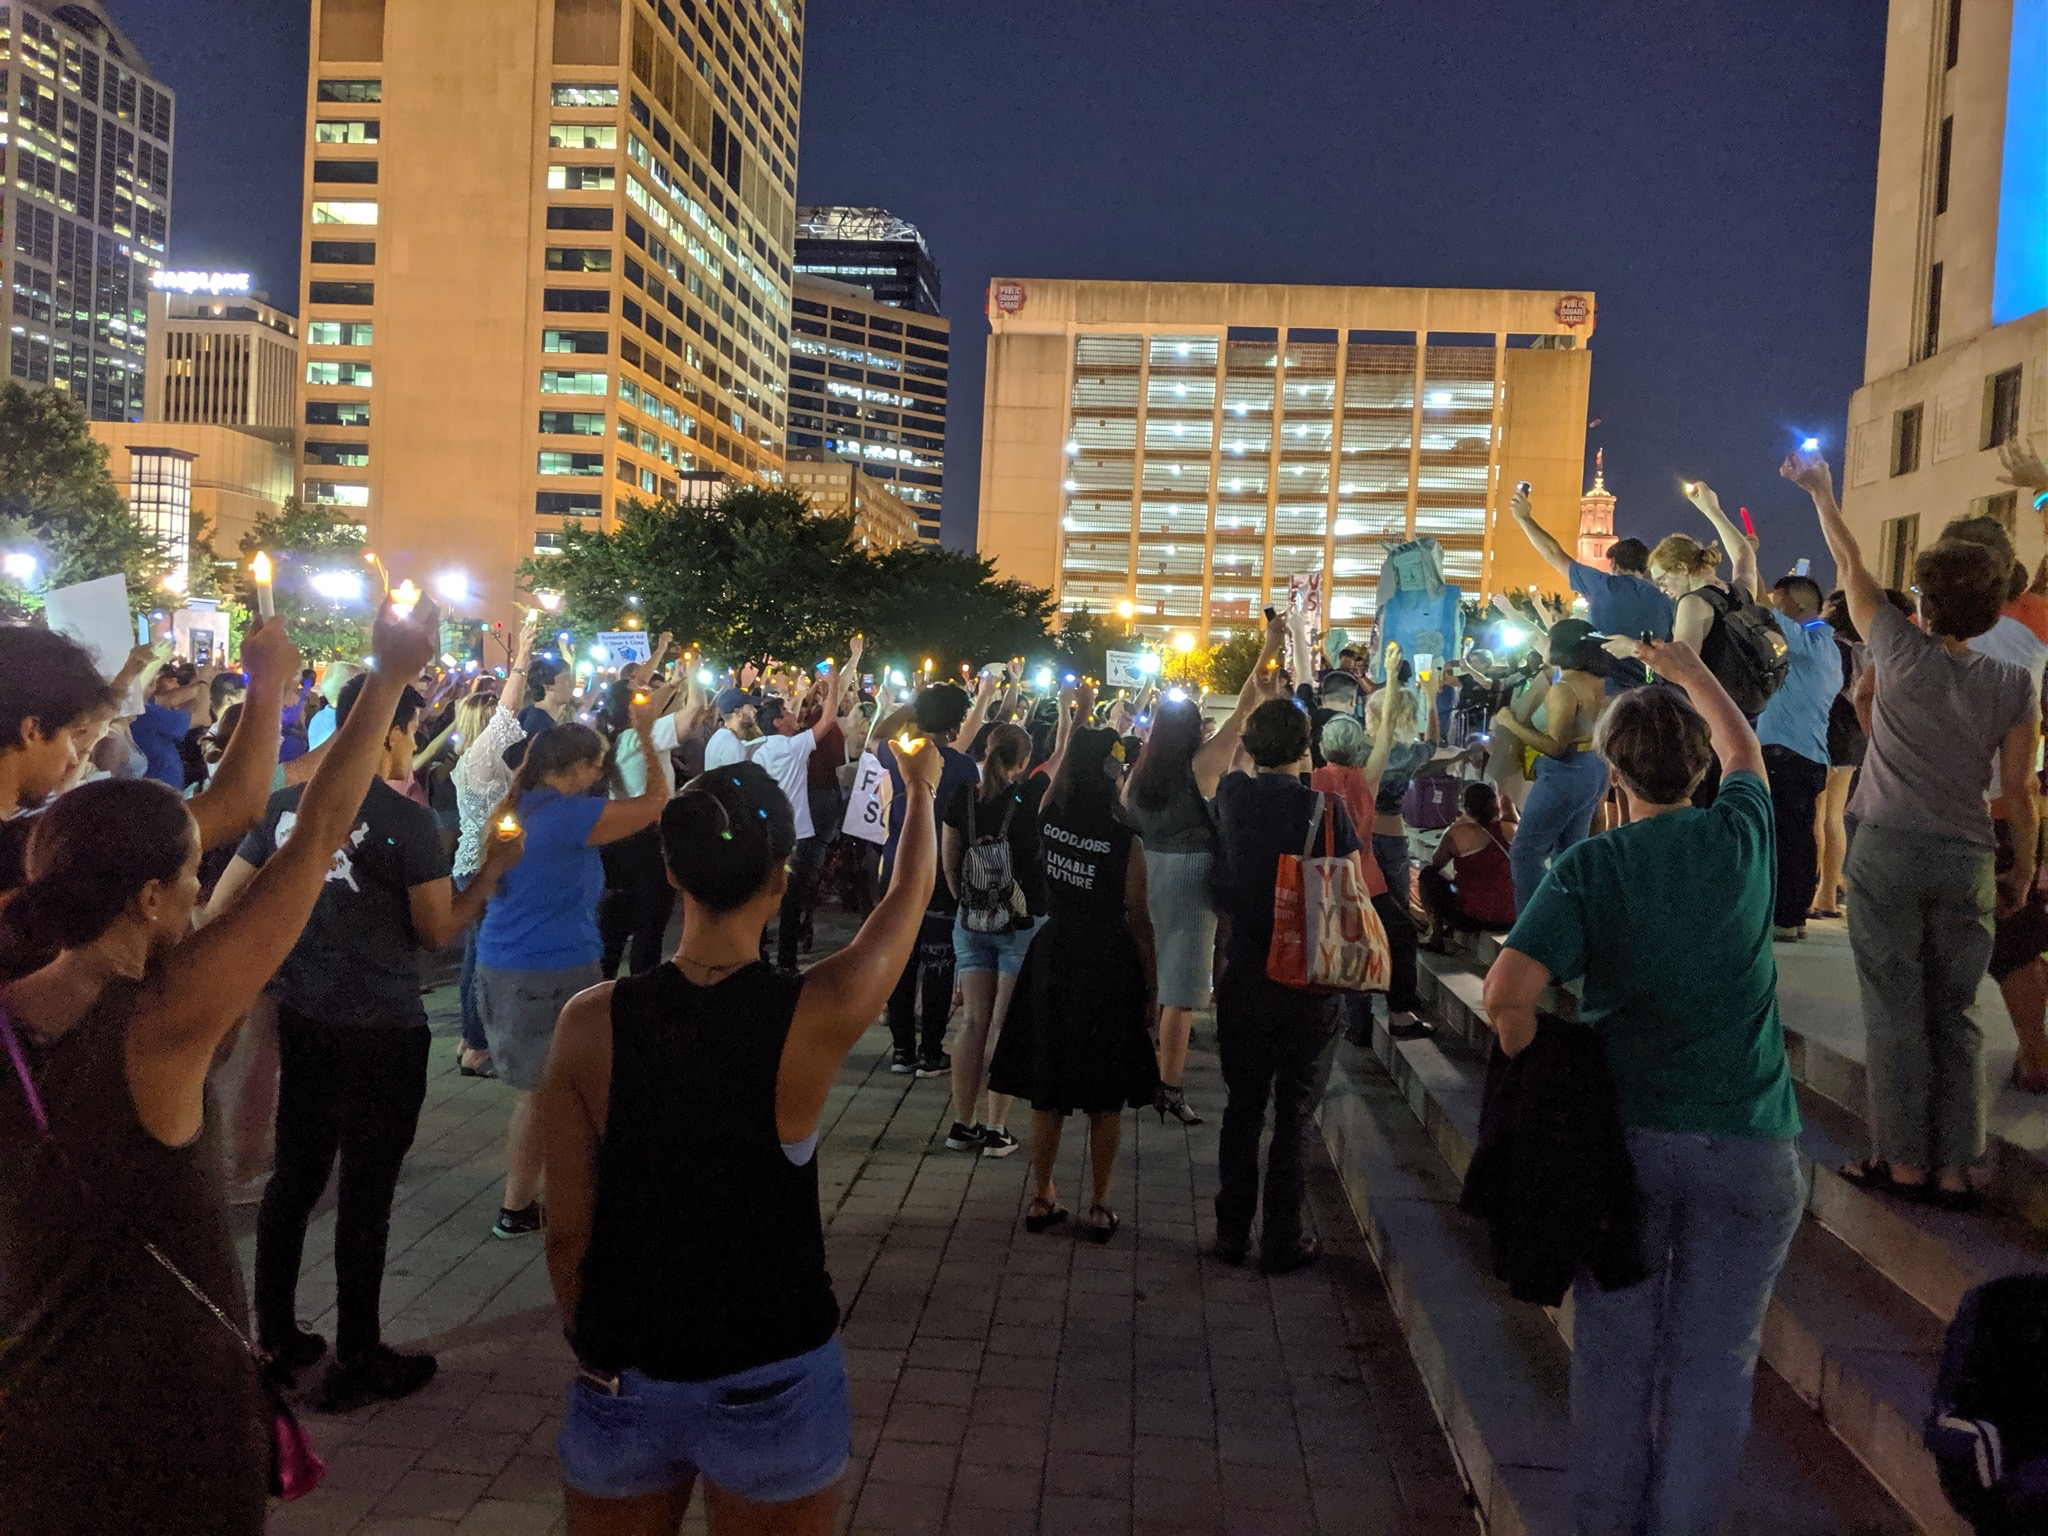 Lights for Liberty Vigil, Nashville, TN 7/12/19 Photo credit: Kaitie Gordon